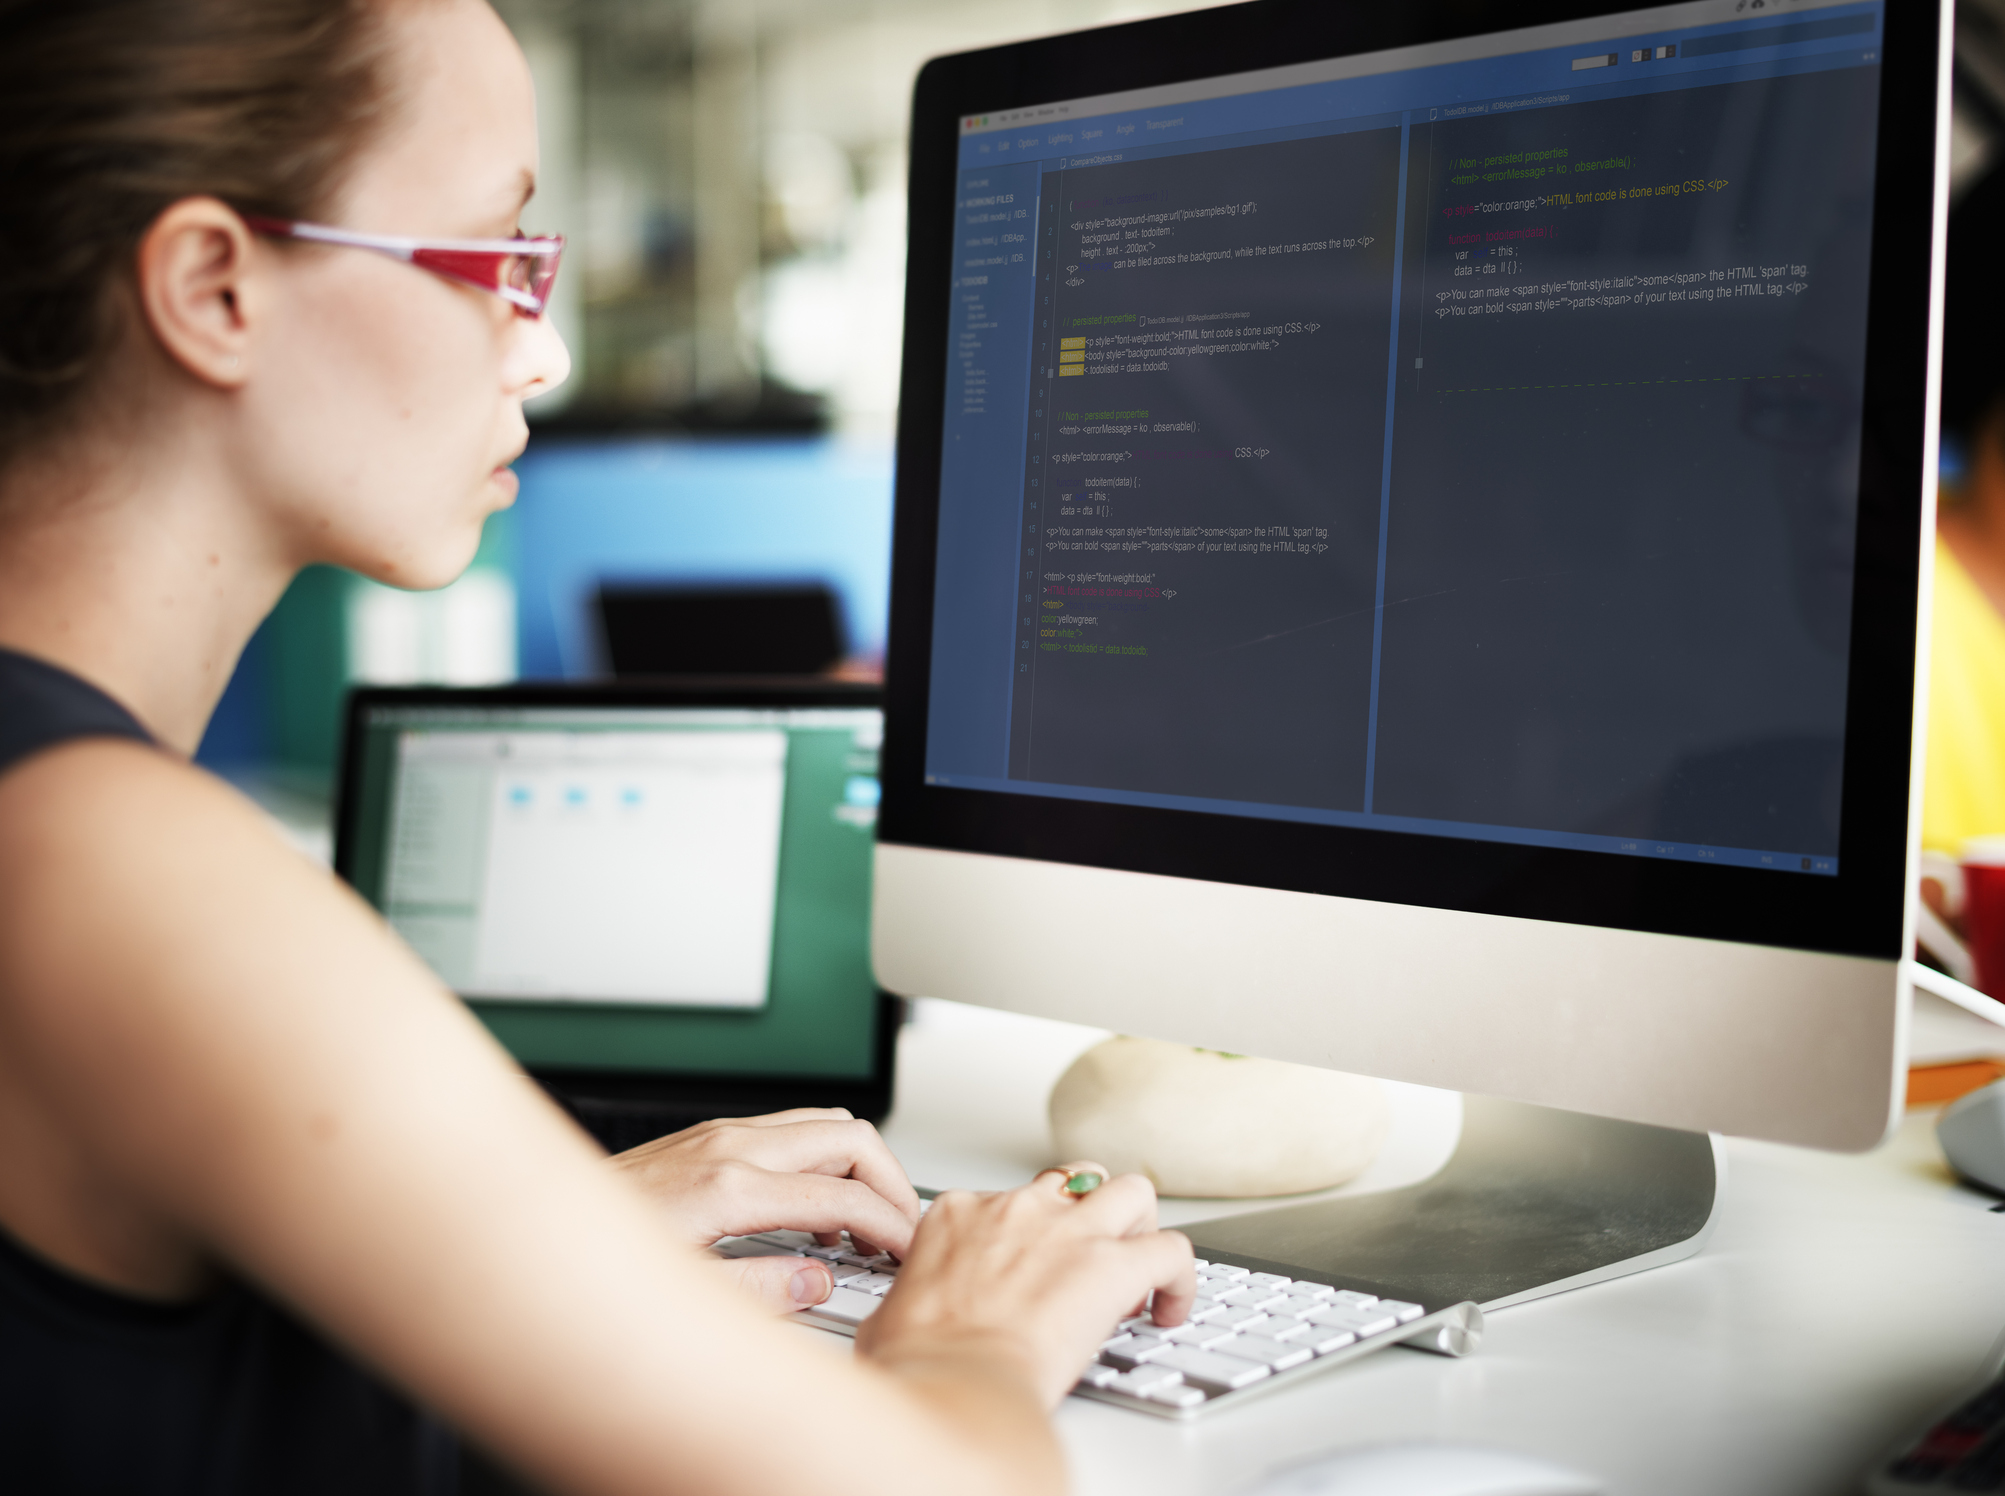 Female professional with red glasses sitting in front of a monitor, typing computer science coding